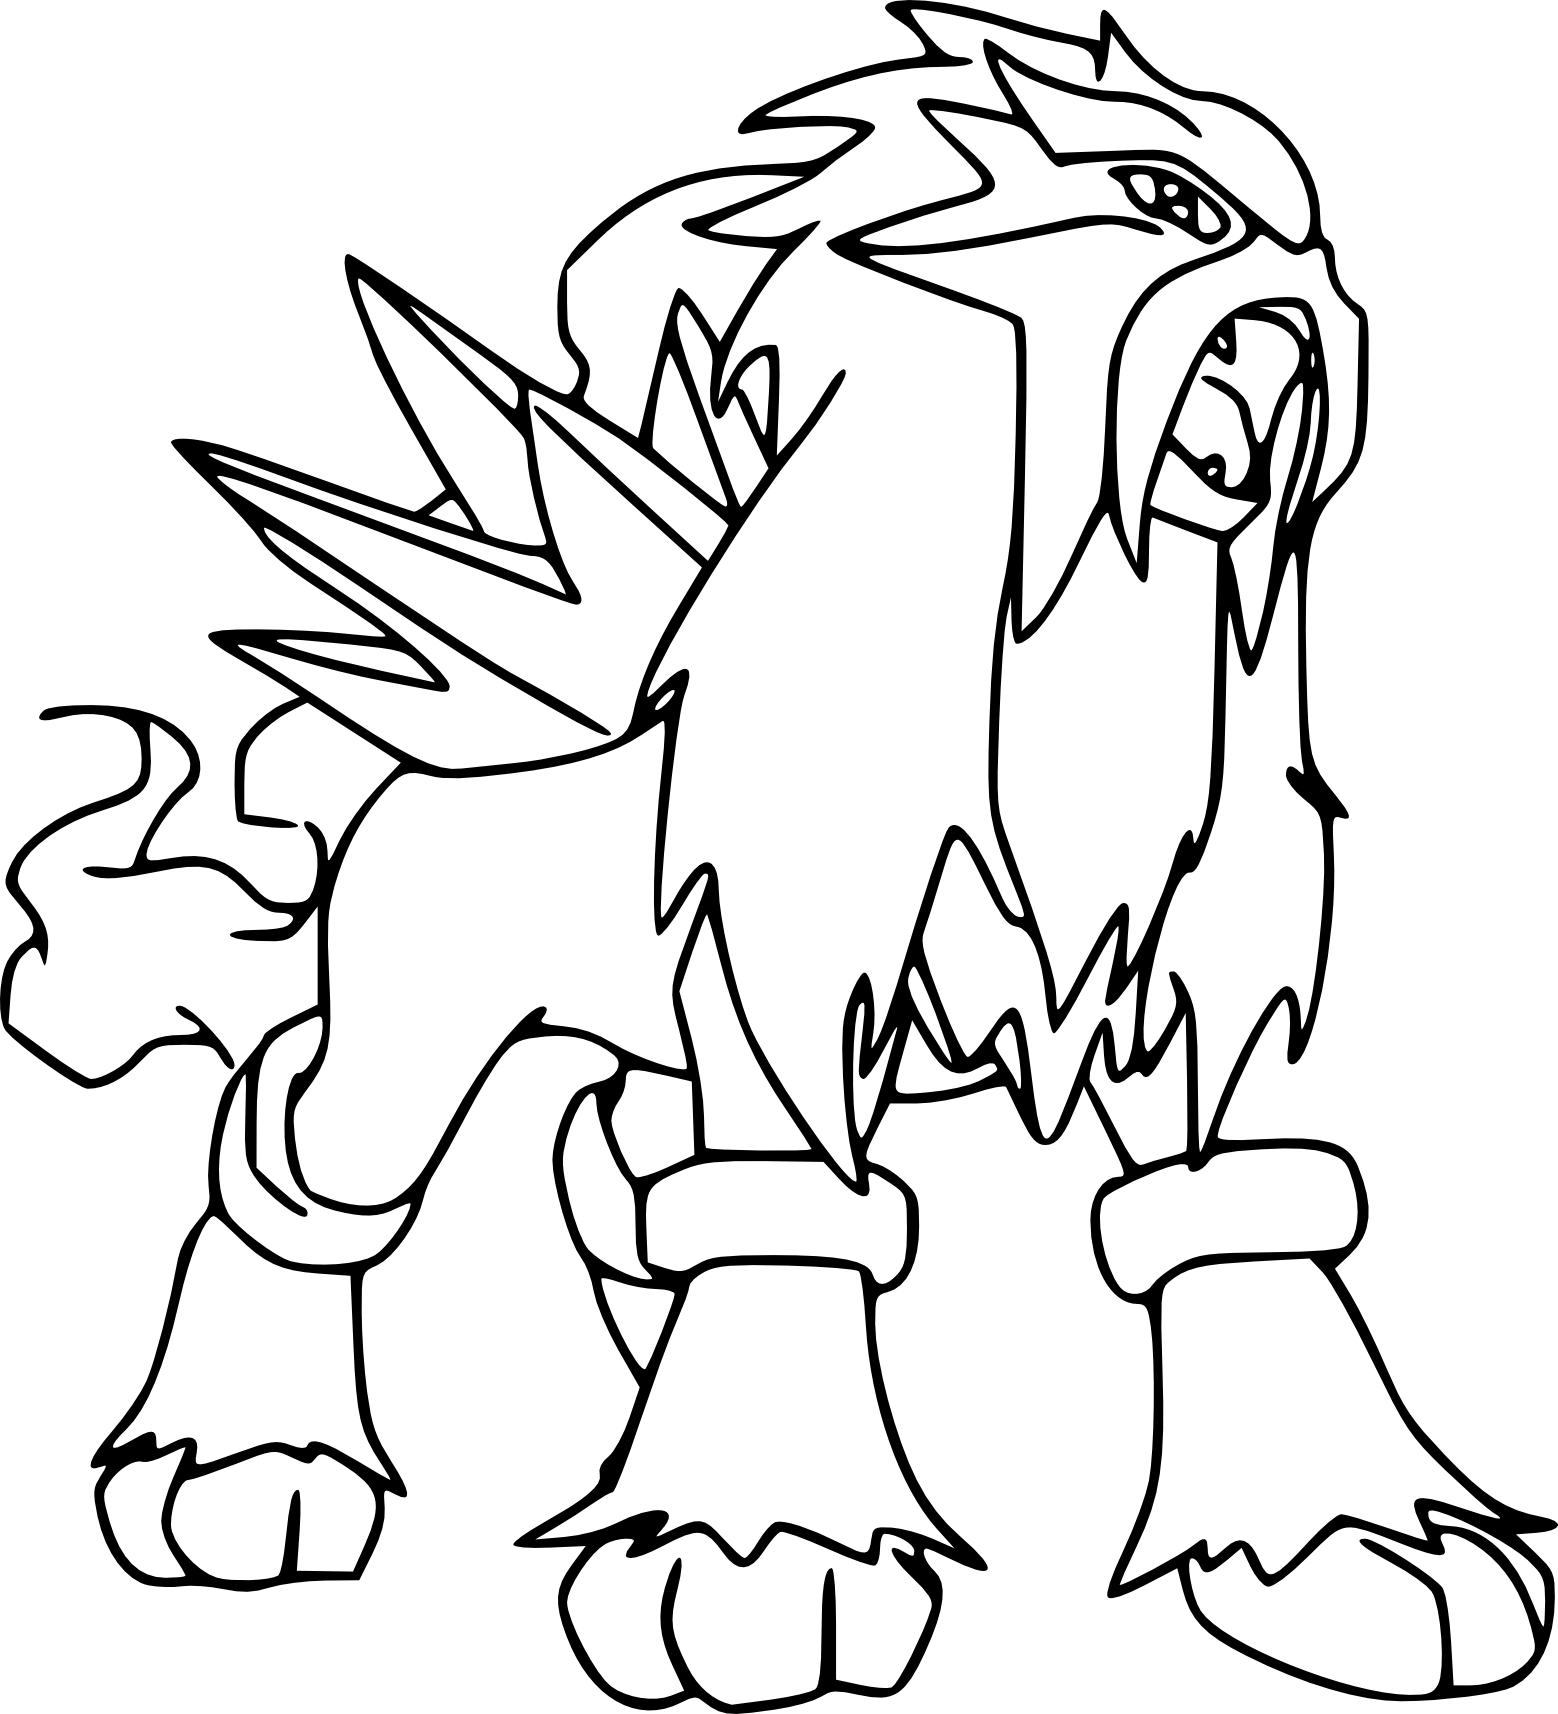 141 dessins de coloriage pokemon imprimer for Ex pokemon coloring pages